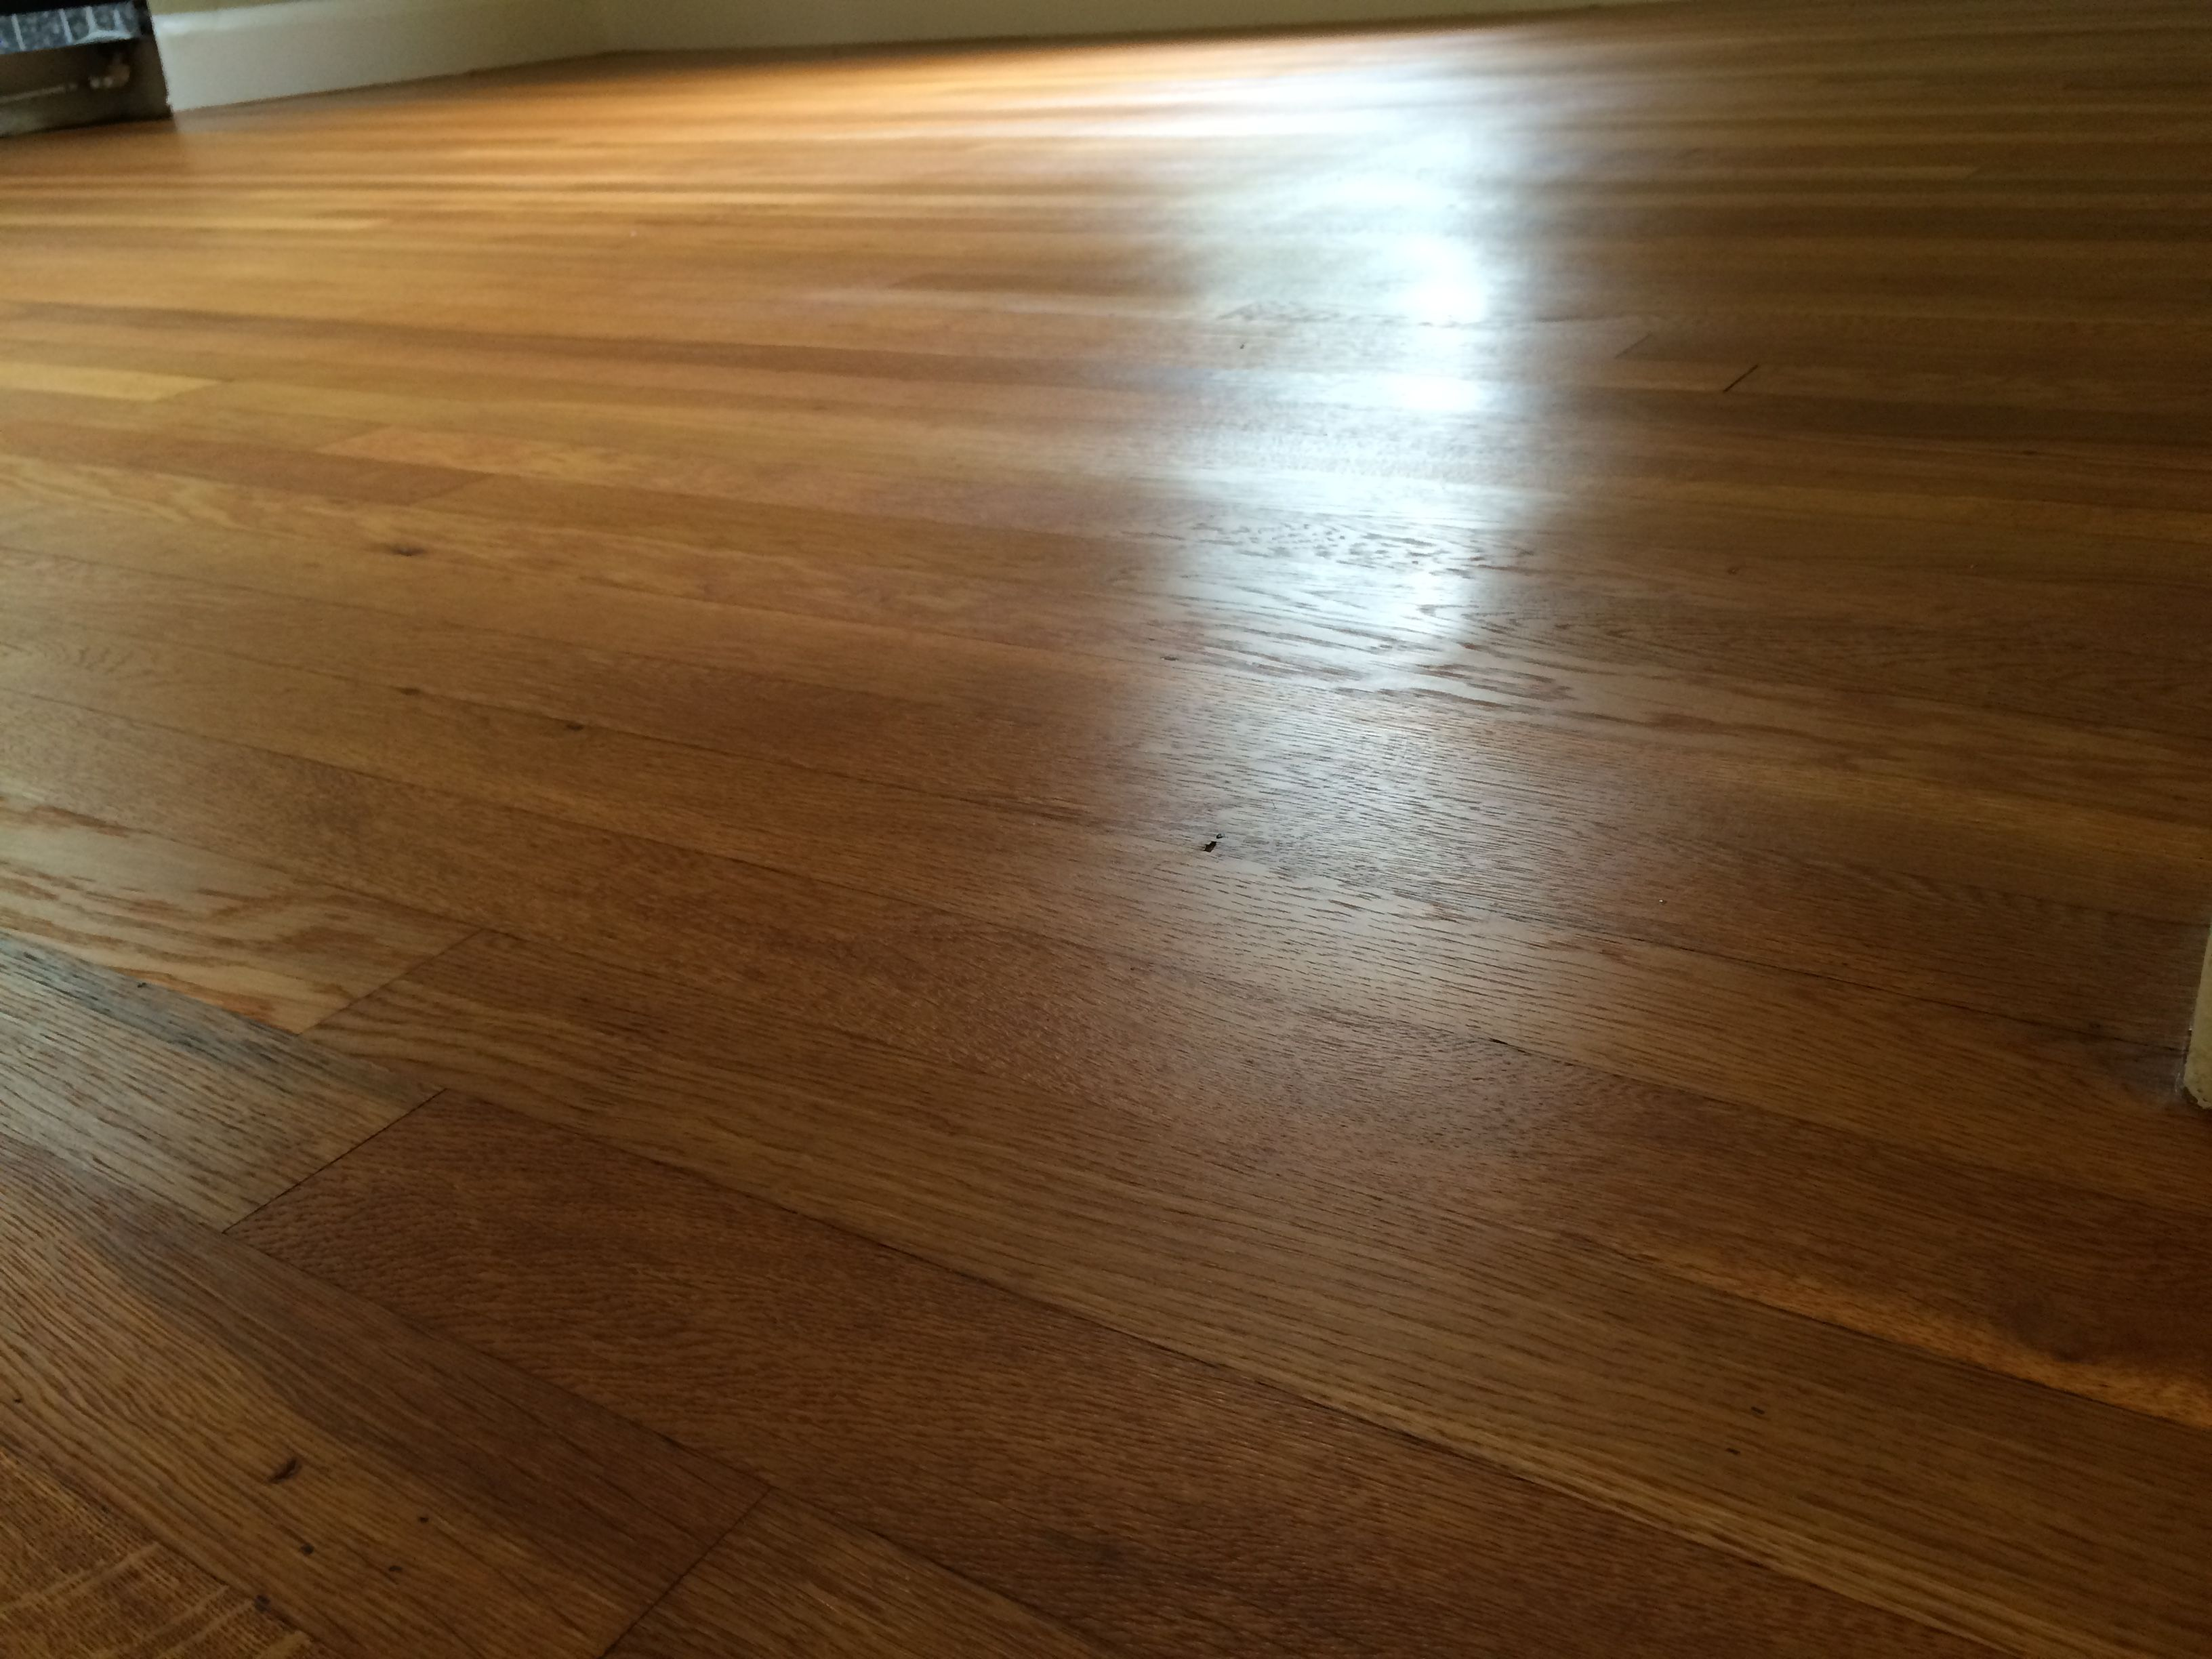 Best poly finish for hardwood floors - Don T Like Those Plastic Polyurethane Finishes Use Hardwood Oils For A More Natural Look And Feel This Floor Was Refinished With 2 Coats Of Loba Impact